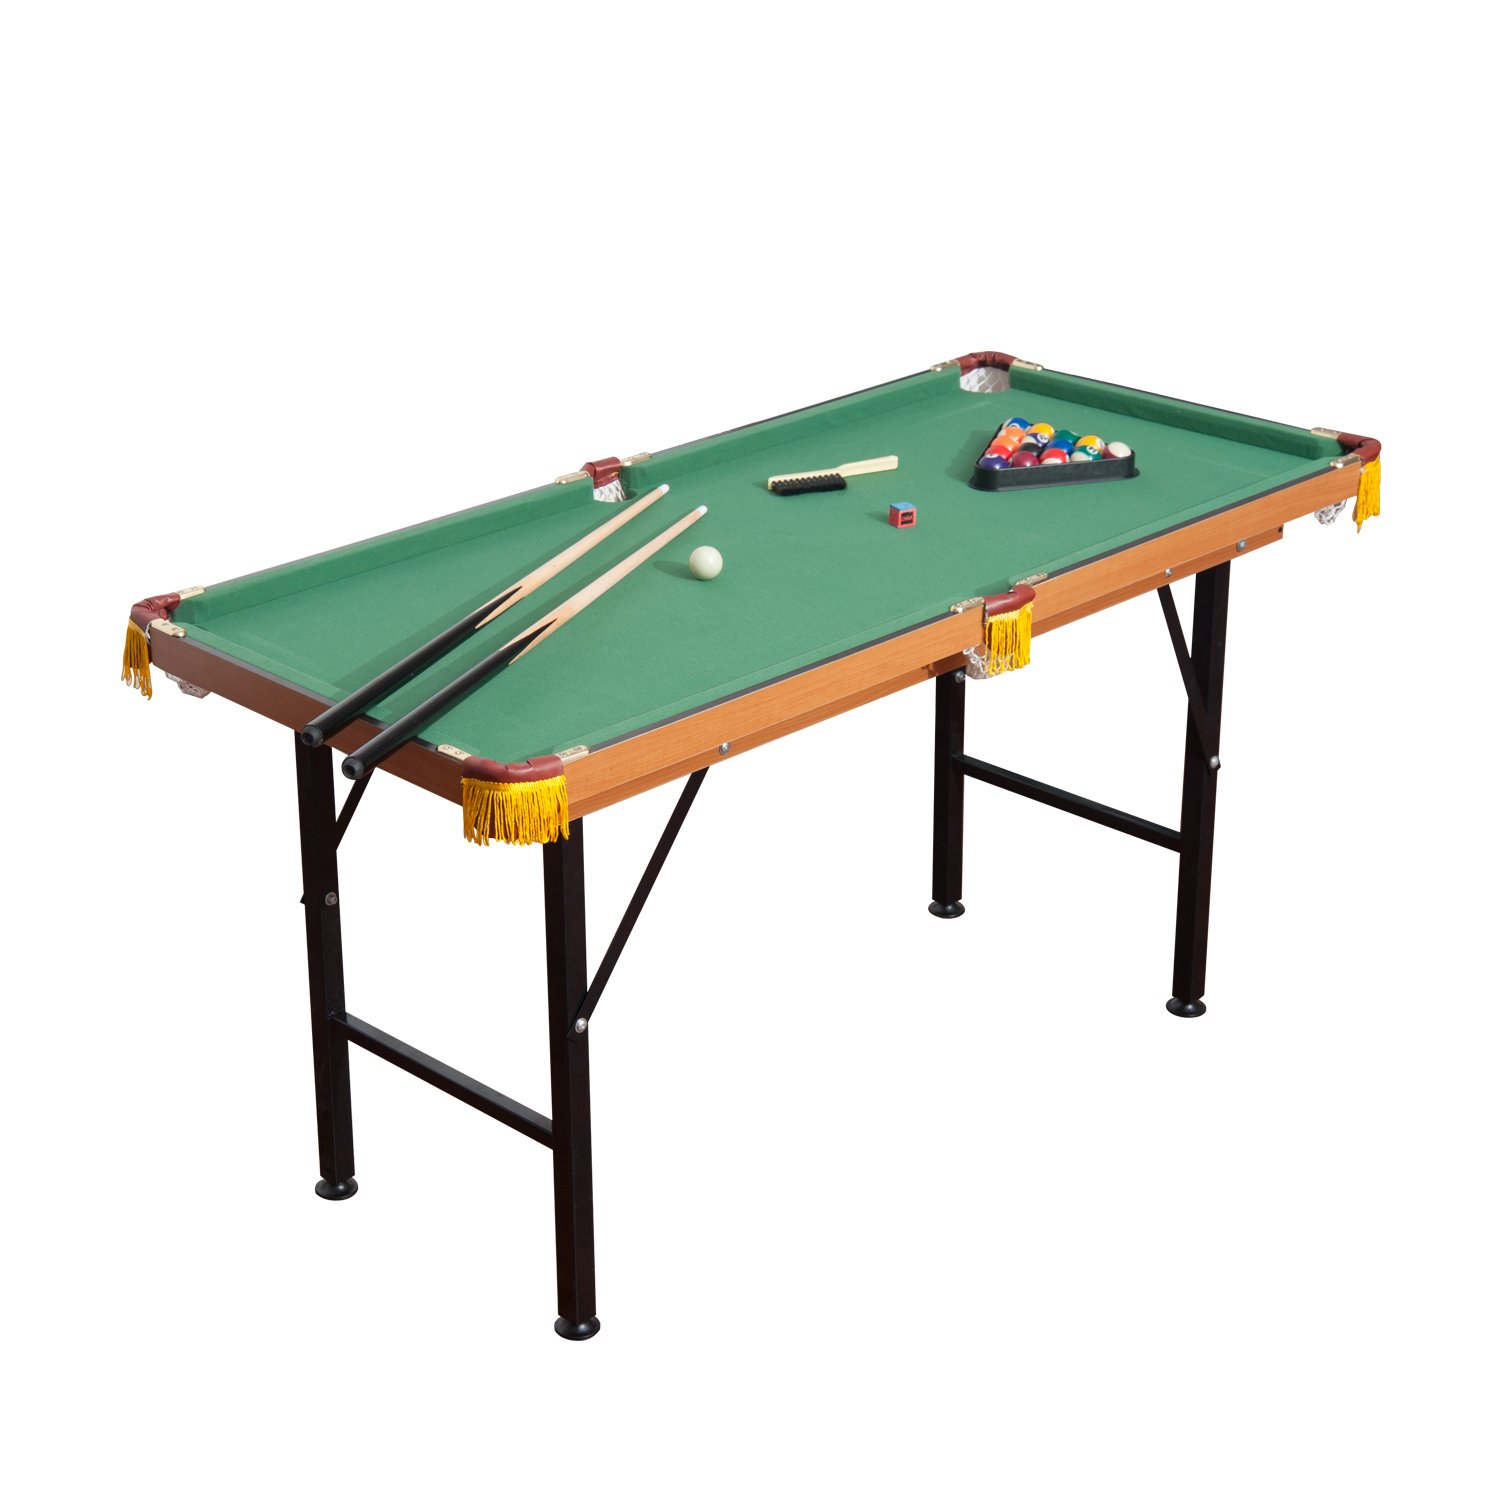 Pool Enthusiasts Who Cannot Afford A Full Size Pool Table Or Simply Have No  Room For It Could Simply Get The HomCom Folding Miniature Billiards Pool  Table.